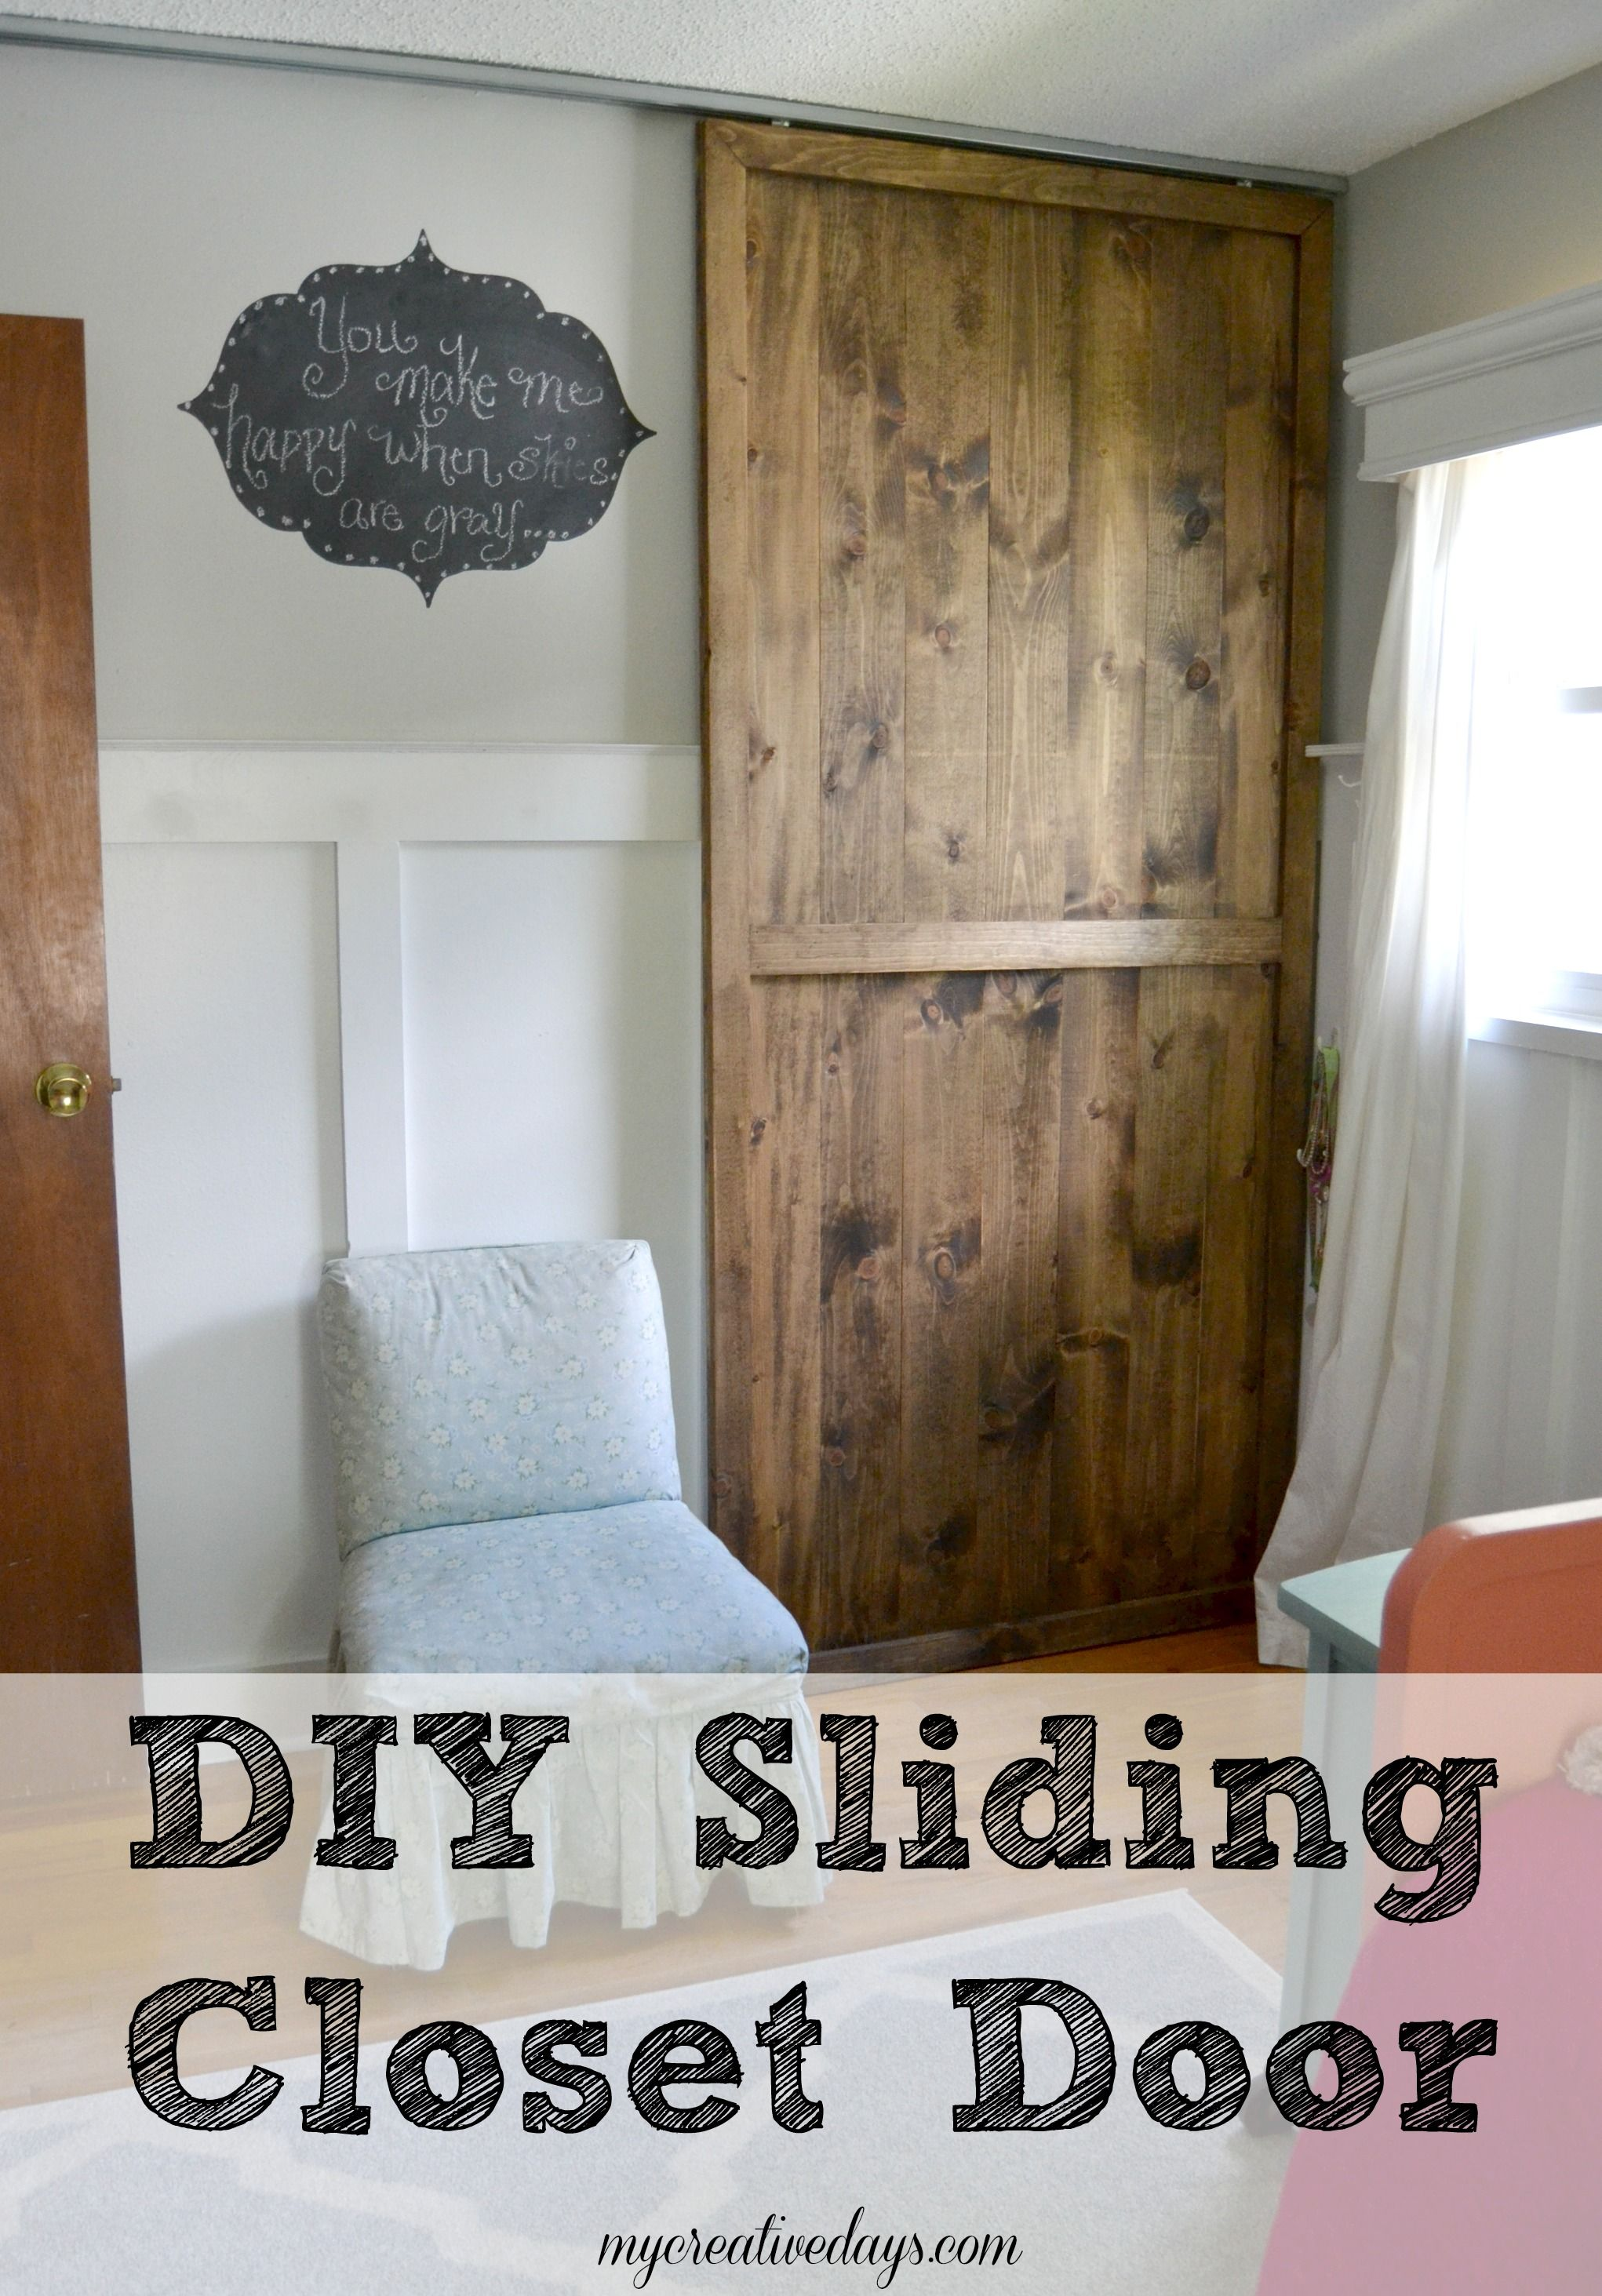 Need A New Closet Door? Do You Like The Look Of A Sliding Door? Make Your  Own With This DIY Sliding Closet Door From Mycreativedays.com.